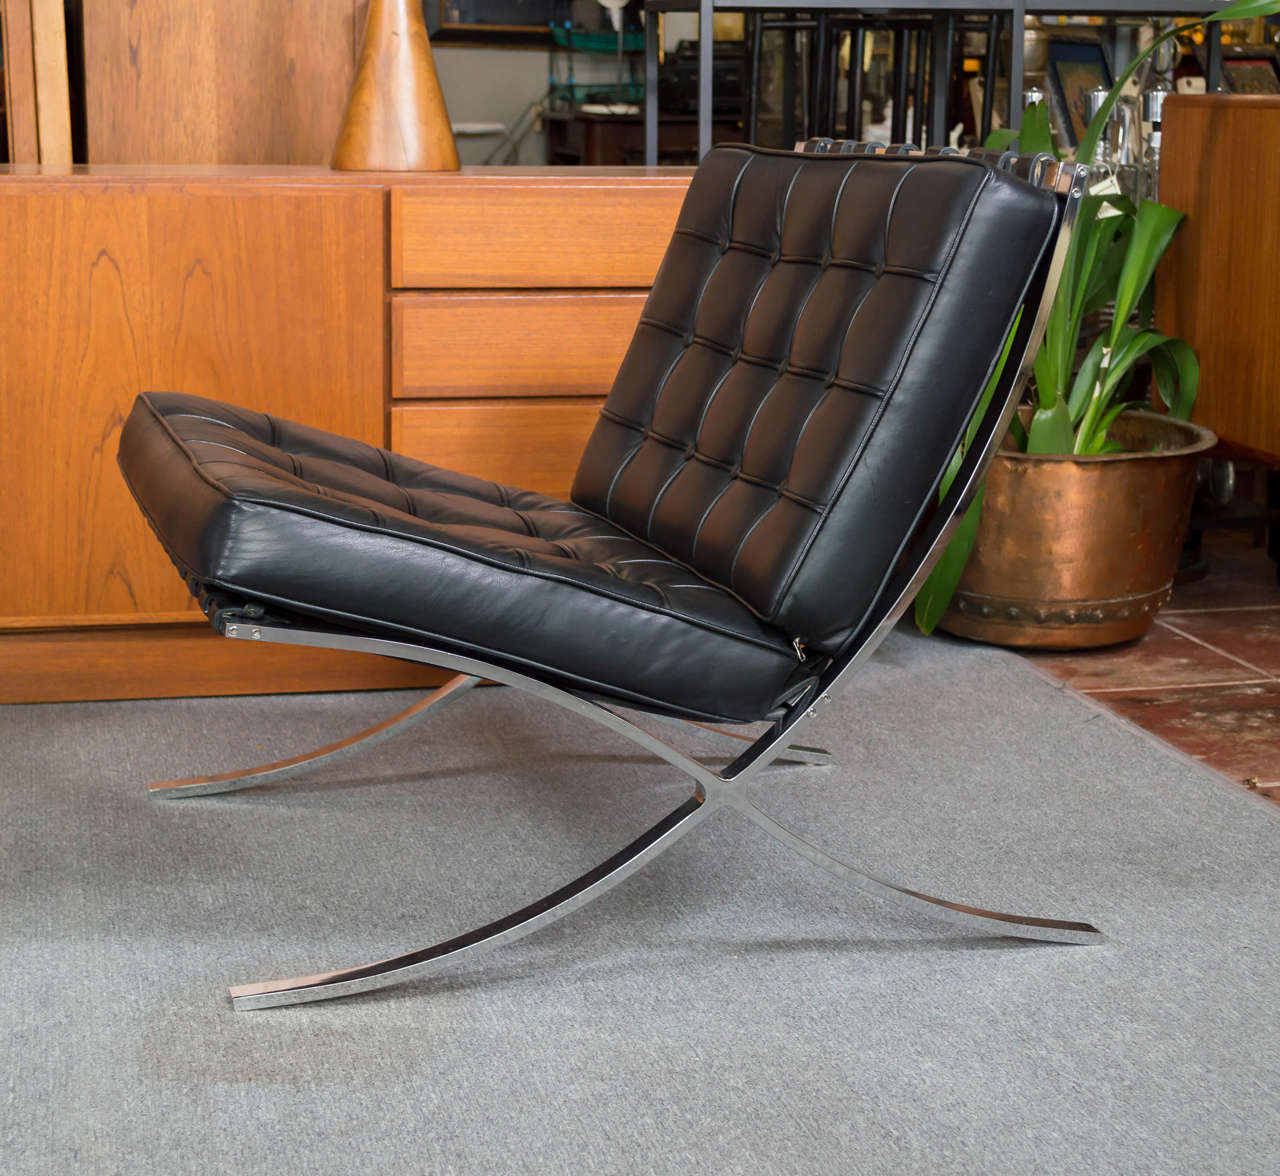 barcelona chair style couch living room side chairs with arms vintage pair of mies van der rohe